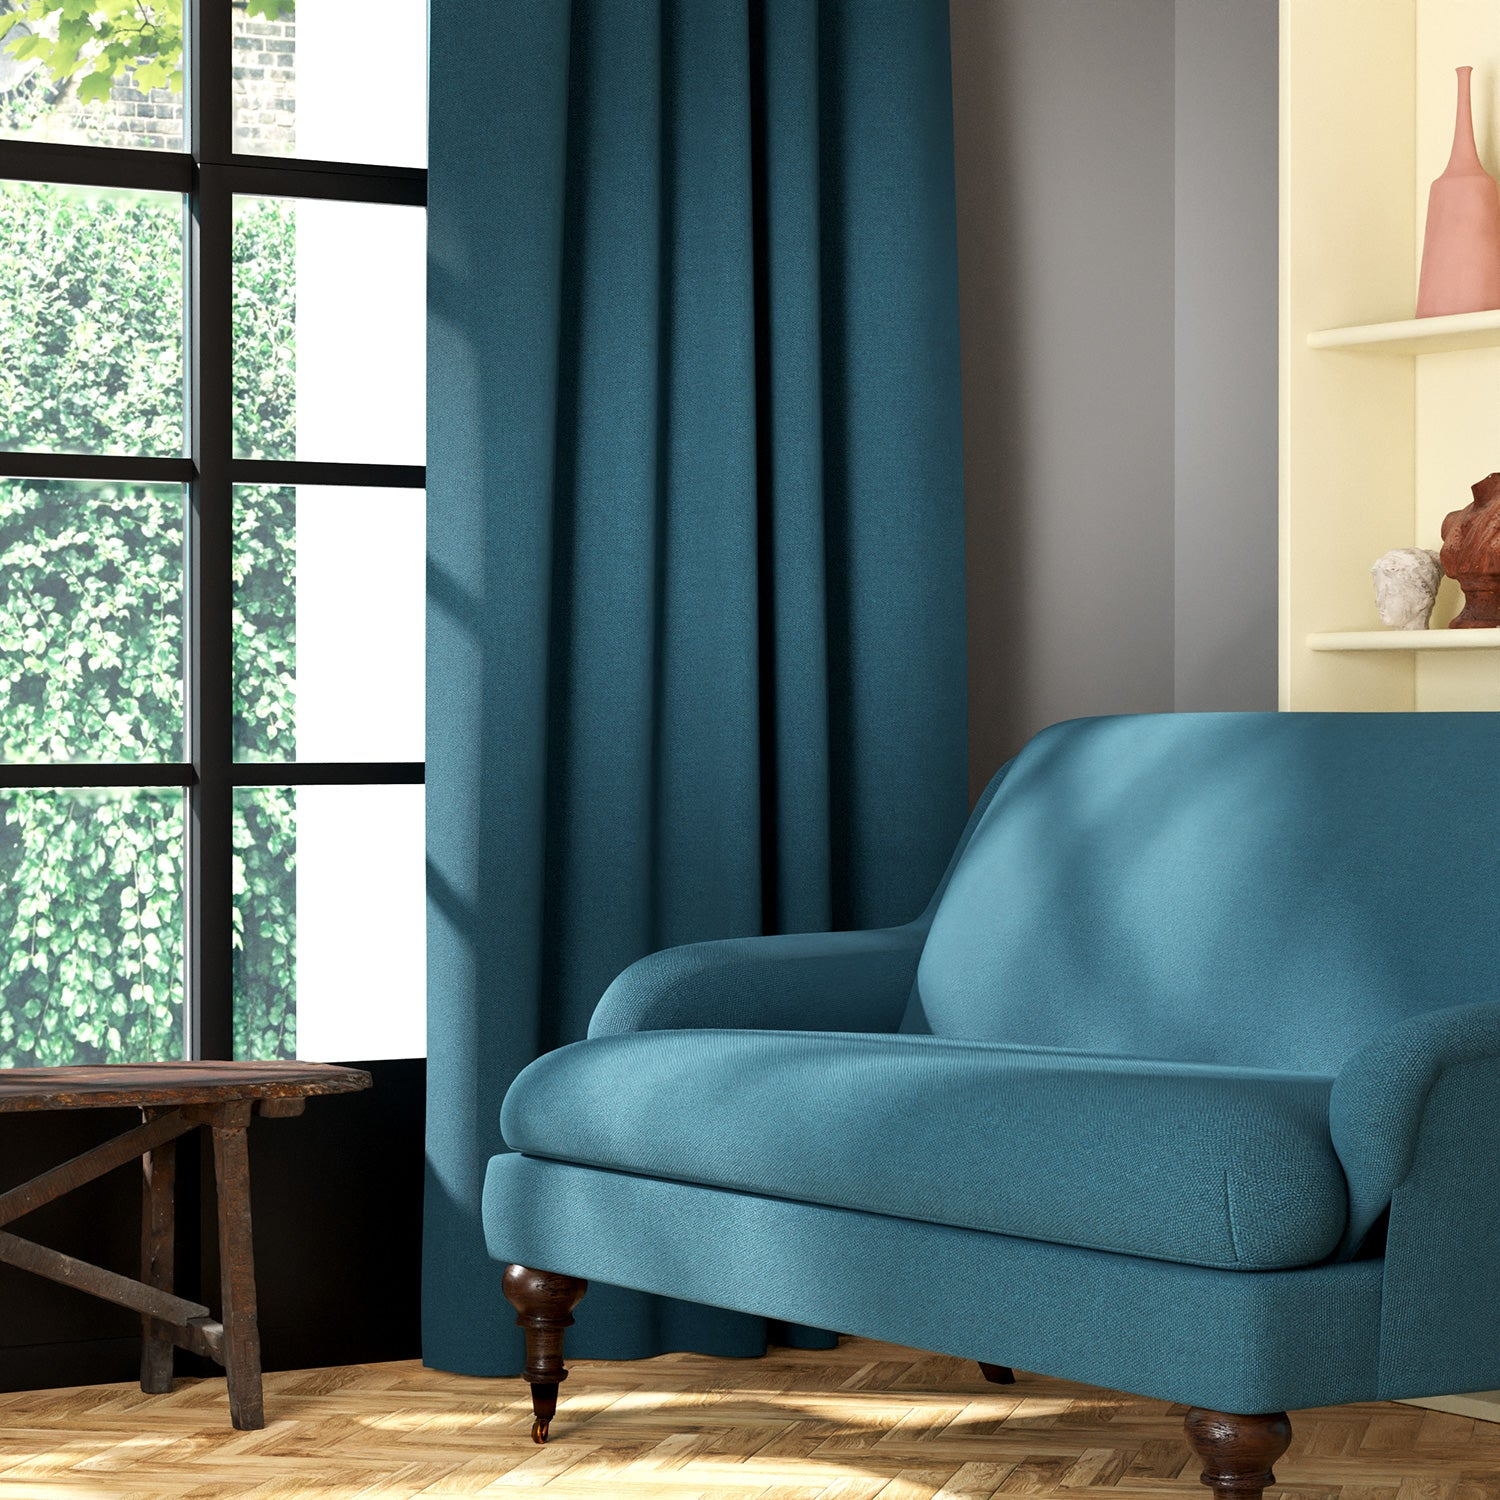 Living room featuring a sofa and curtains in a plain blue eco-friendly fabric